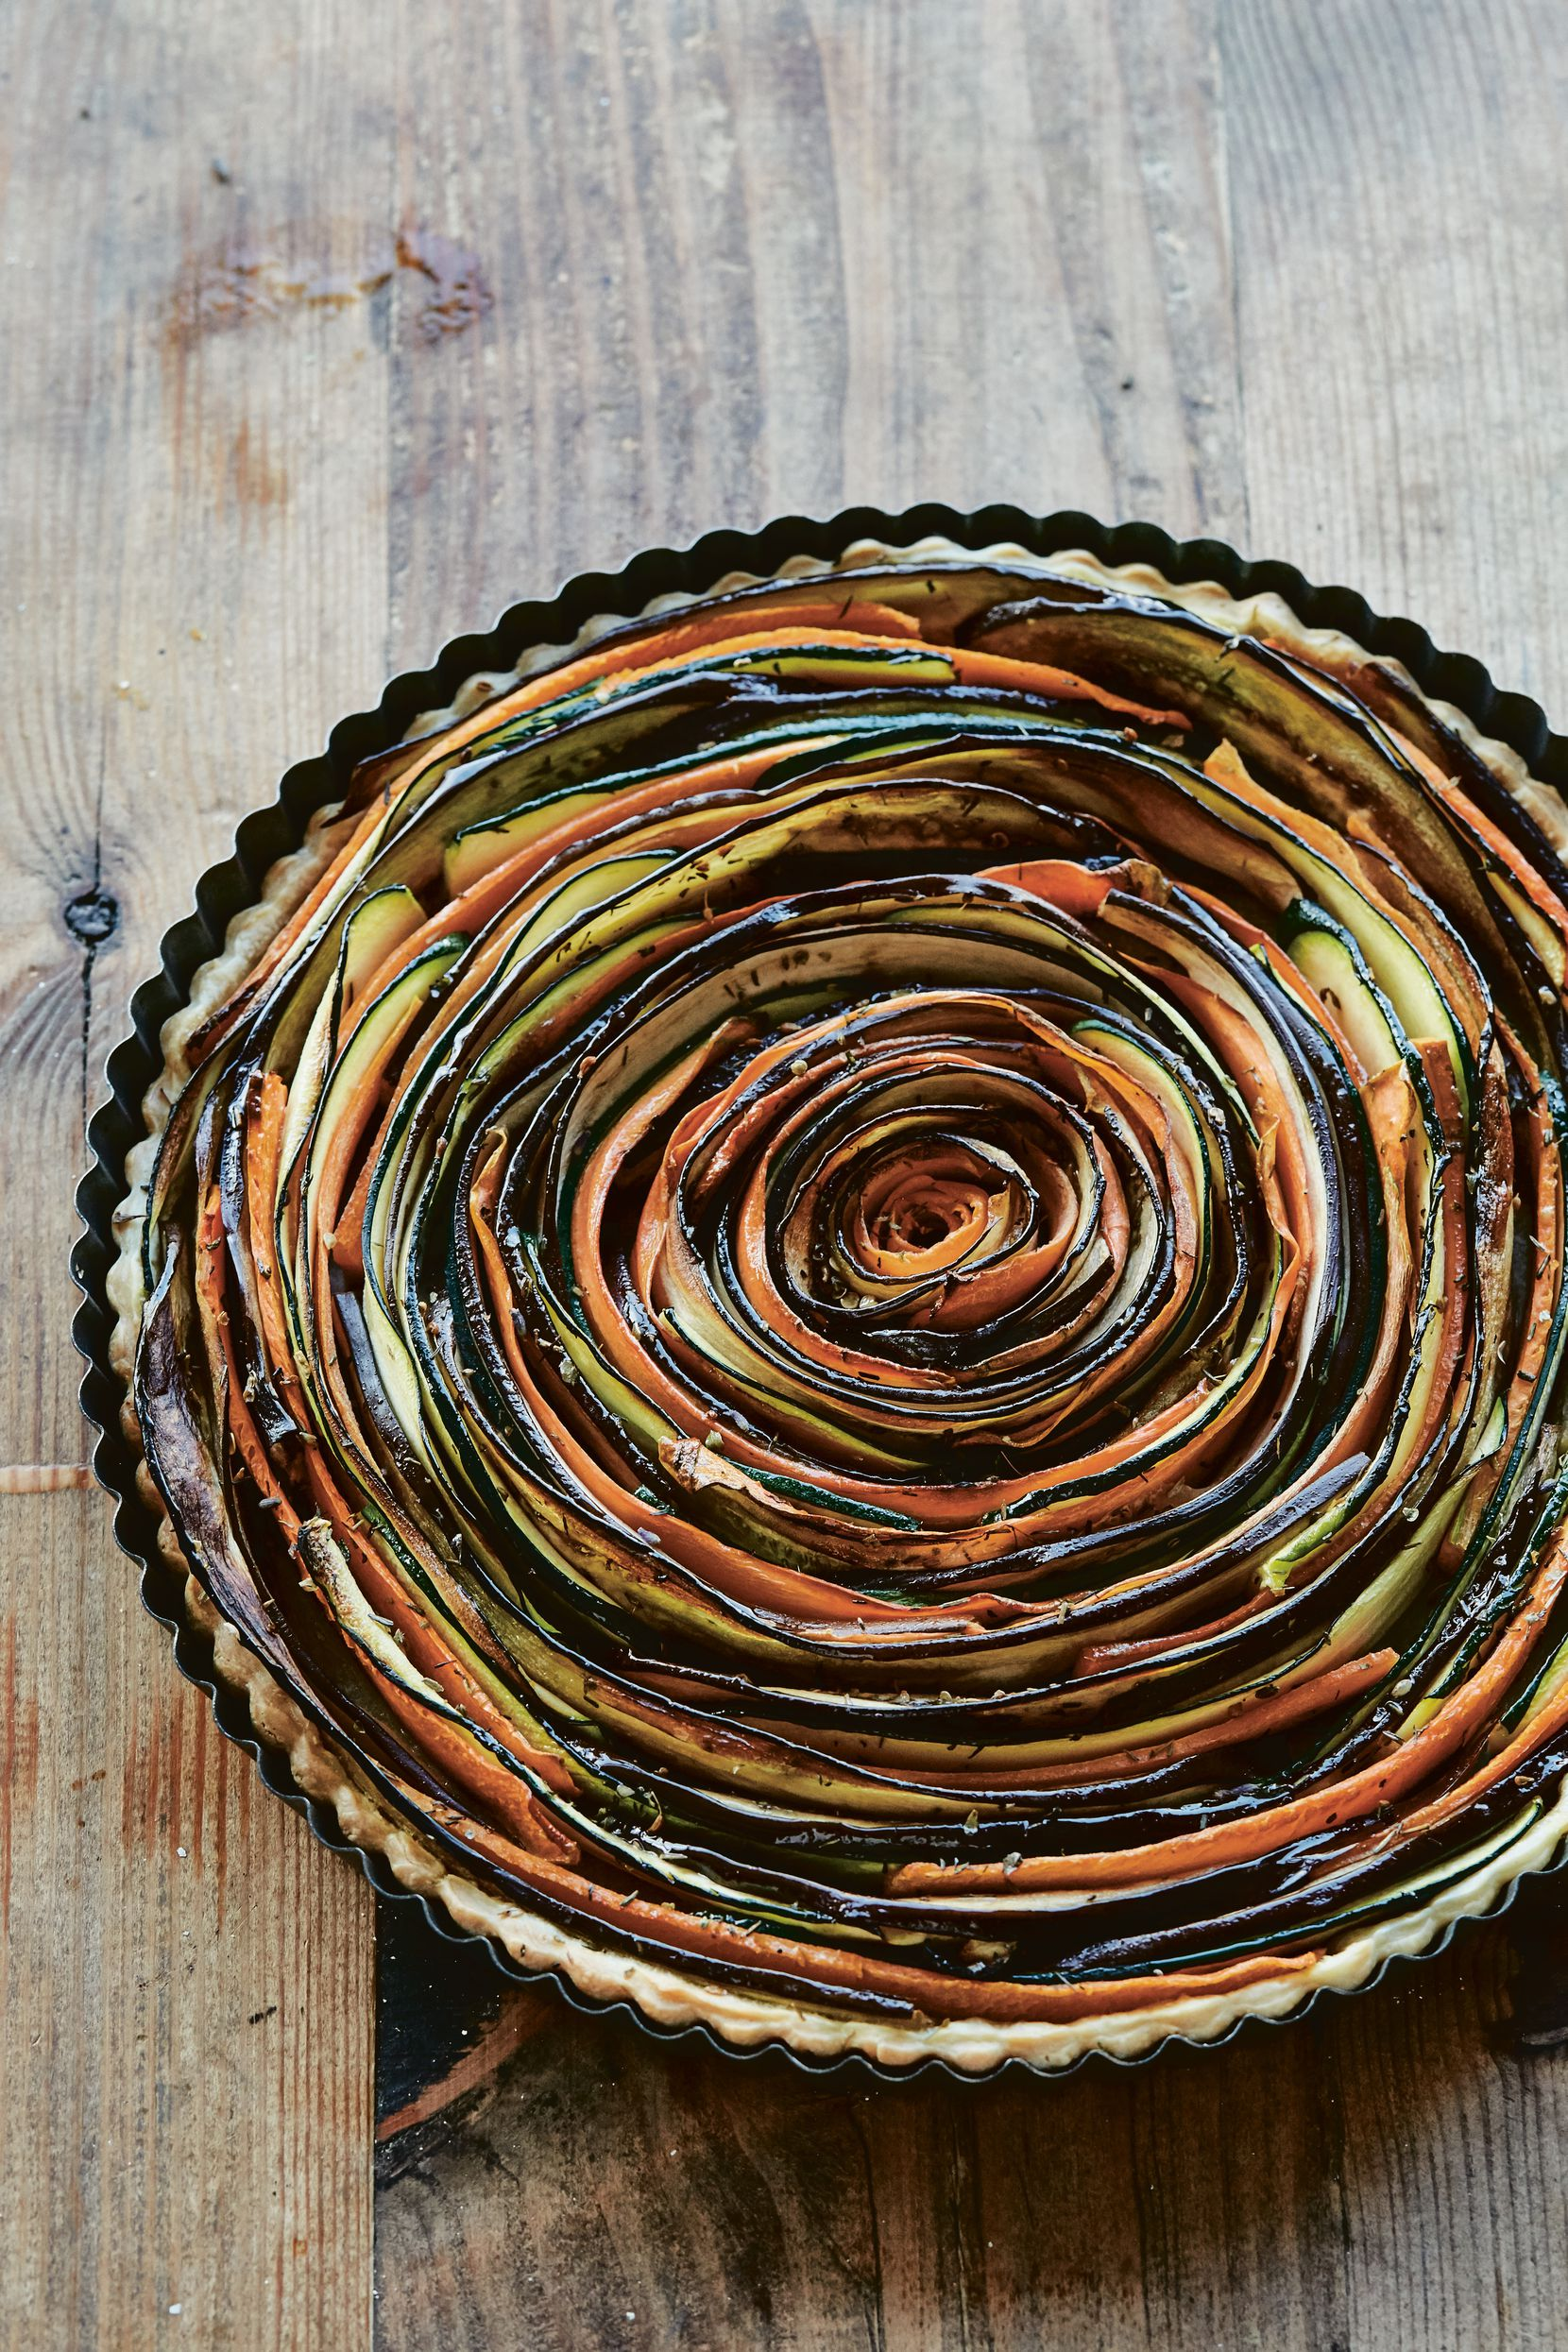 Summer spiral vegetable tart from Maman The Cookbook by Elise Marshall